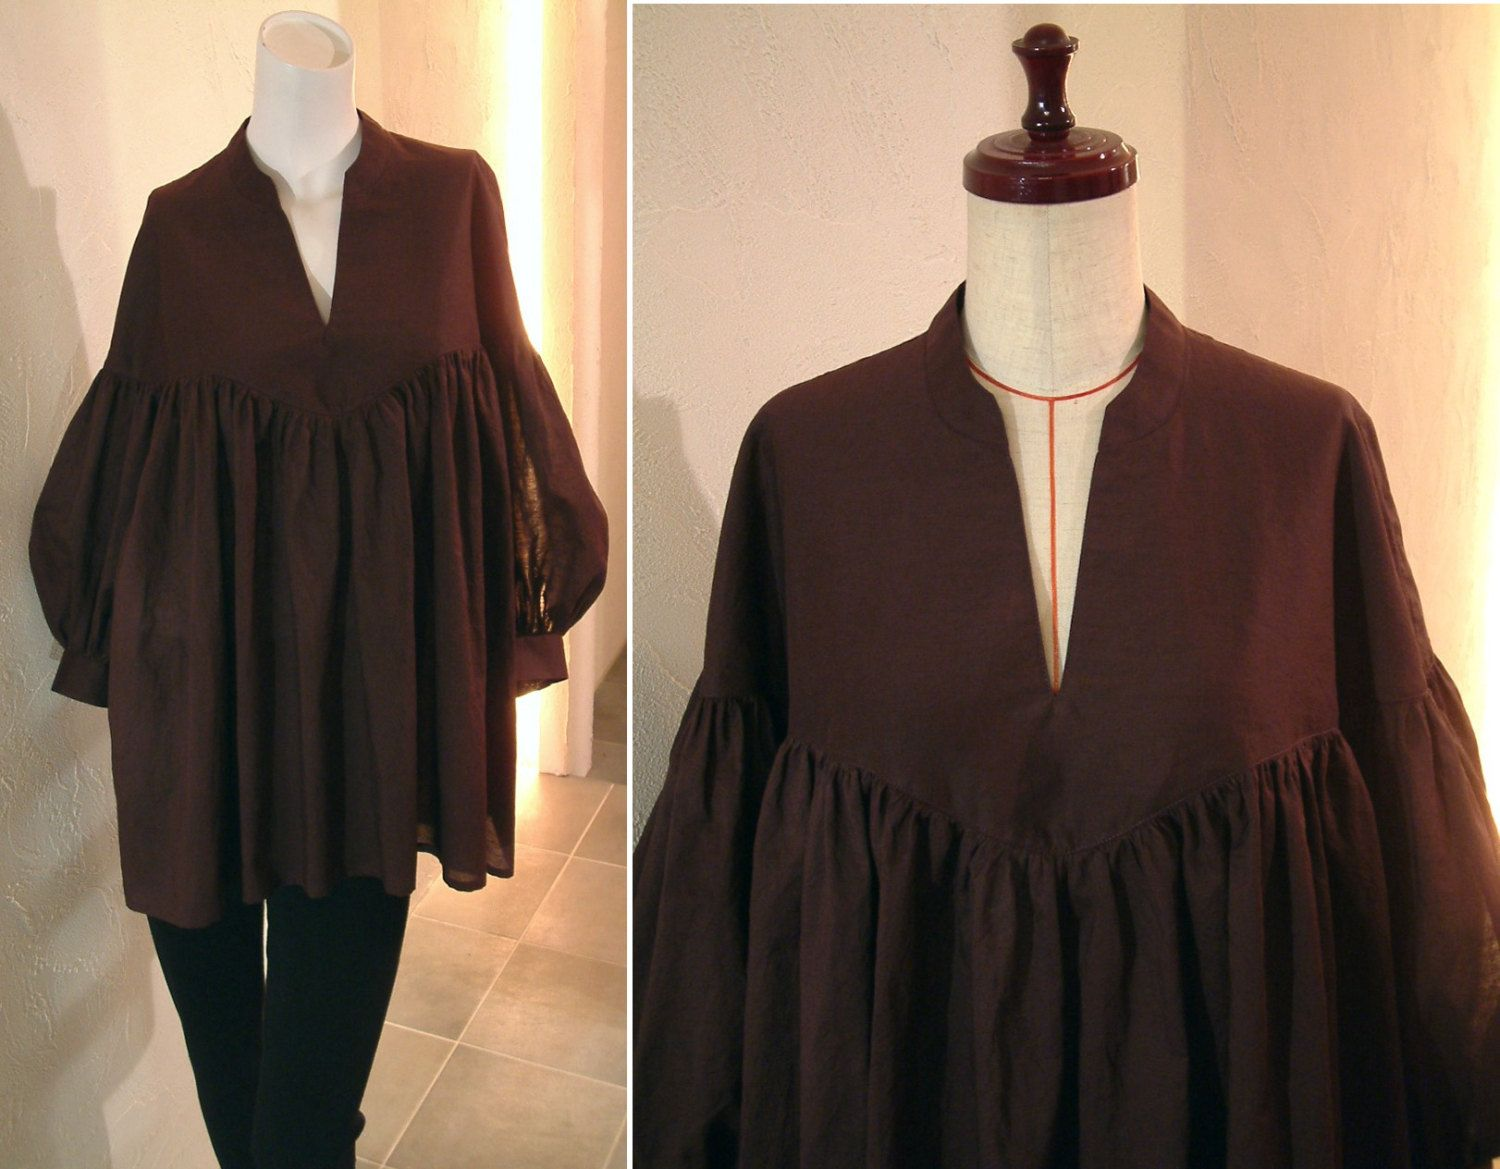 Spring 2016 S/S Purple Chocolate Brown Linen Cotton Voile Balloon sleeves gathered contrast oversized blouse shirt tunic by COCOdake COuture